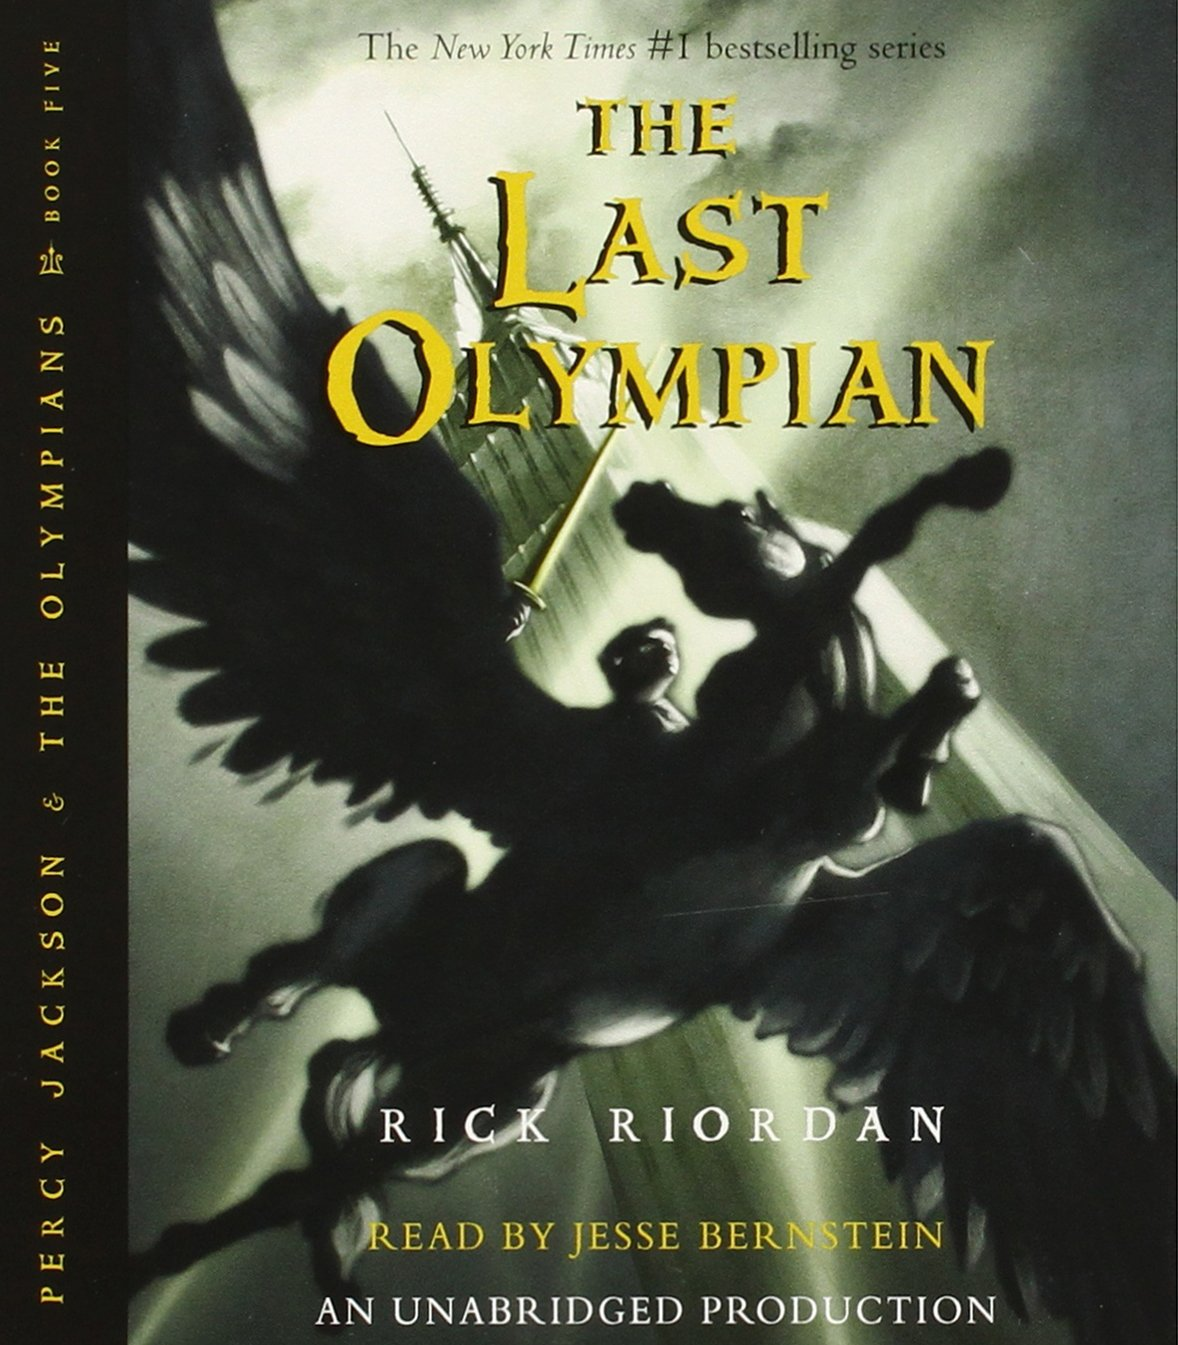 Percy Jackson and the Olympians books 1-5 CD Collection (Percy Jackson & the Olympians) by Listening Library (Audio) (Image #7)